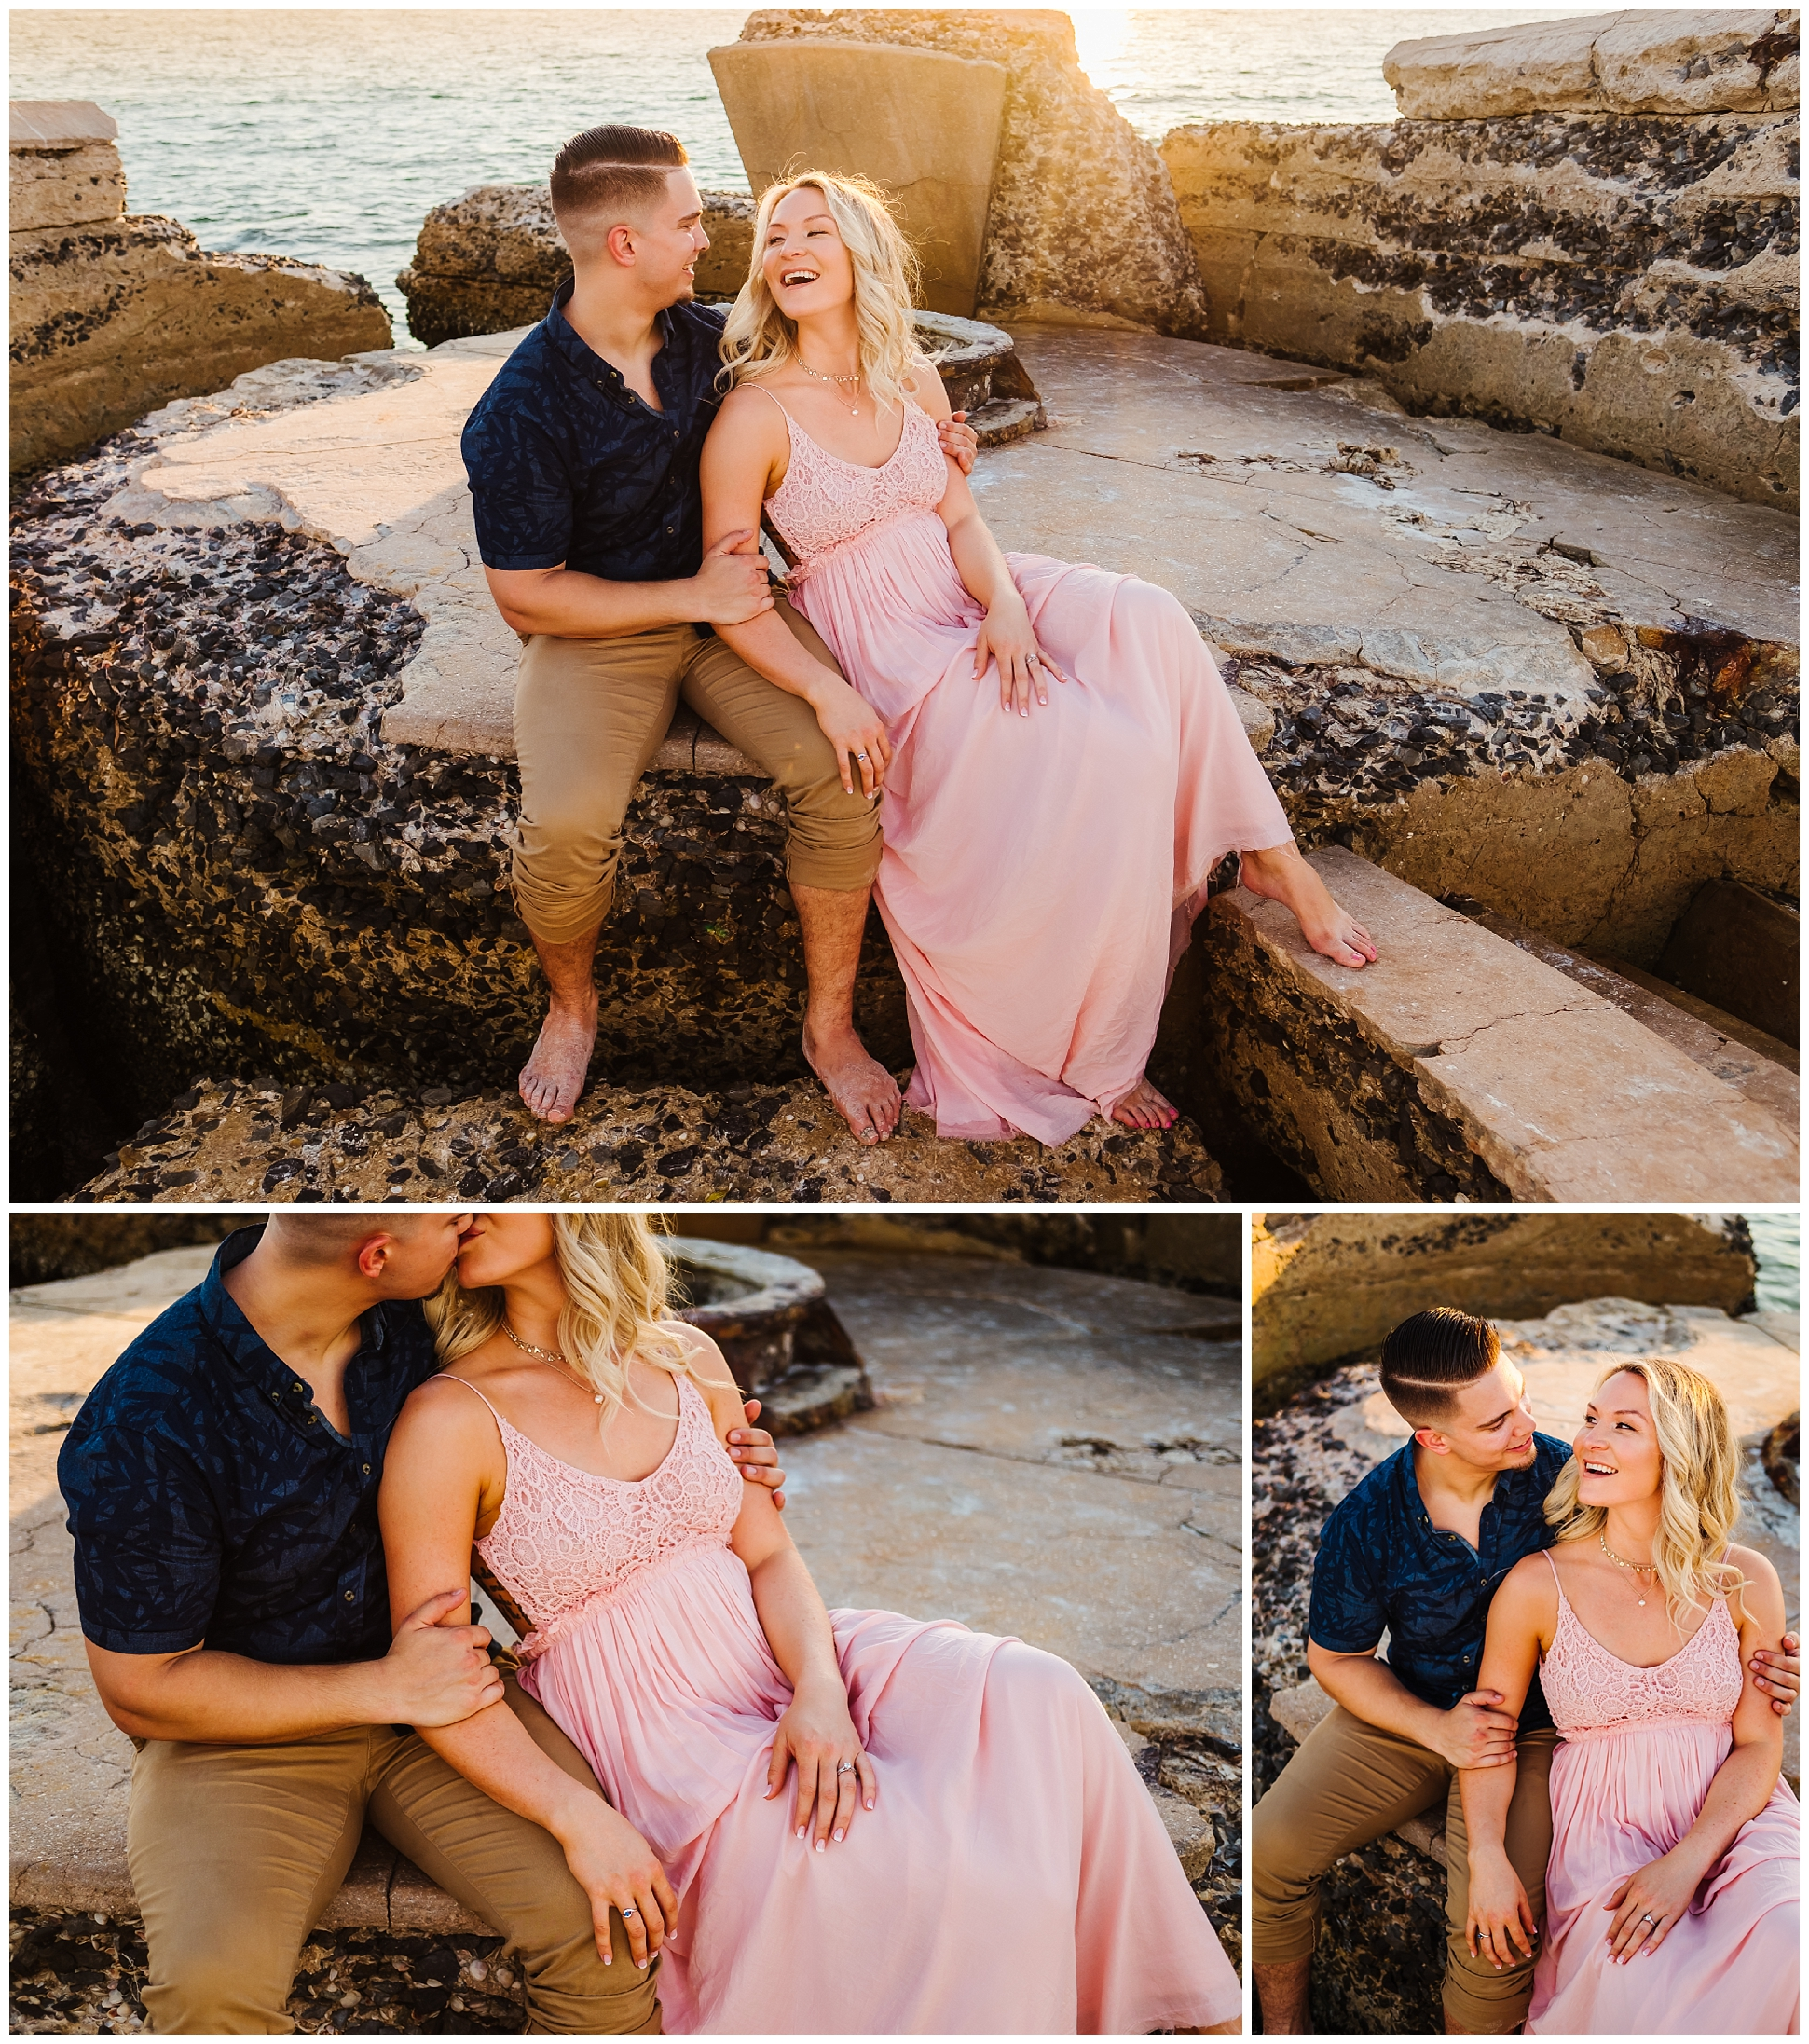 fort-desoto-engagement-photos-florida-beach-sunset_0233.jpg